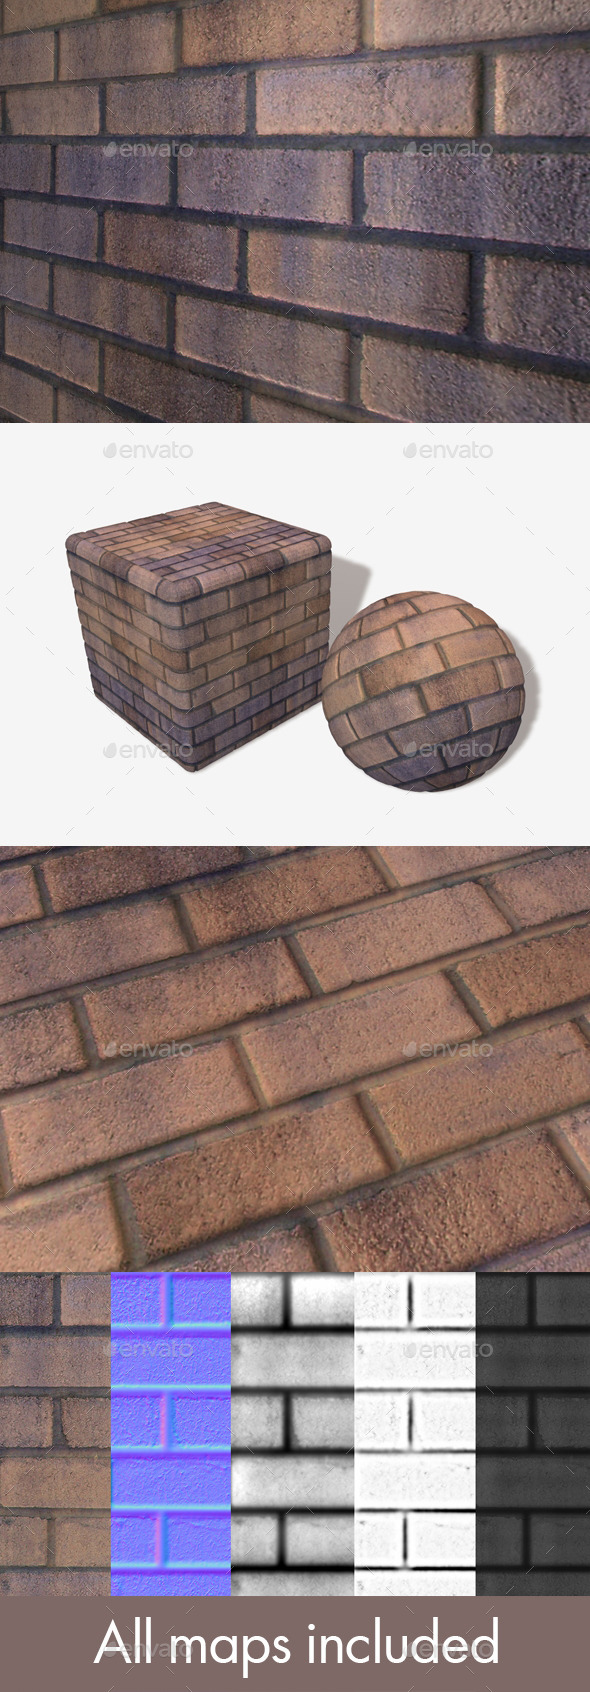 Orange Purple Brick Wall Seamless Texture - 3DOcean Item for Sale